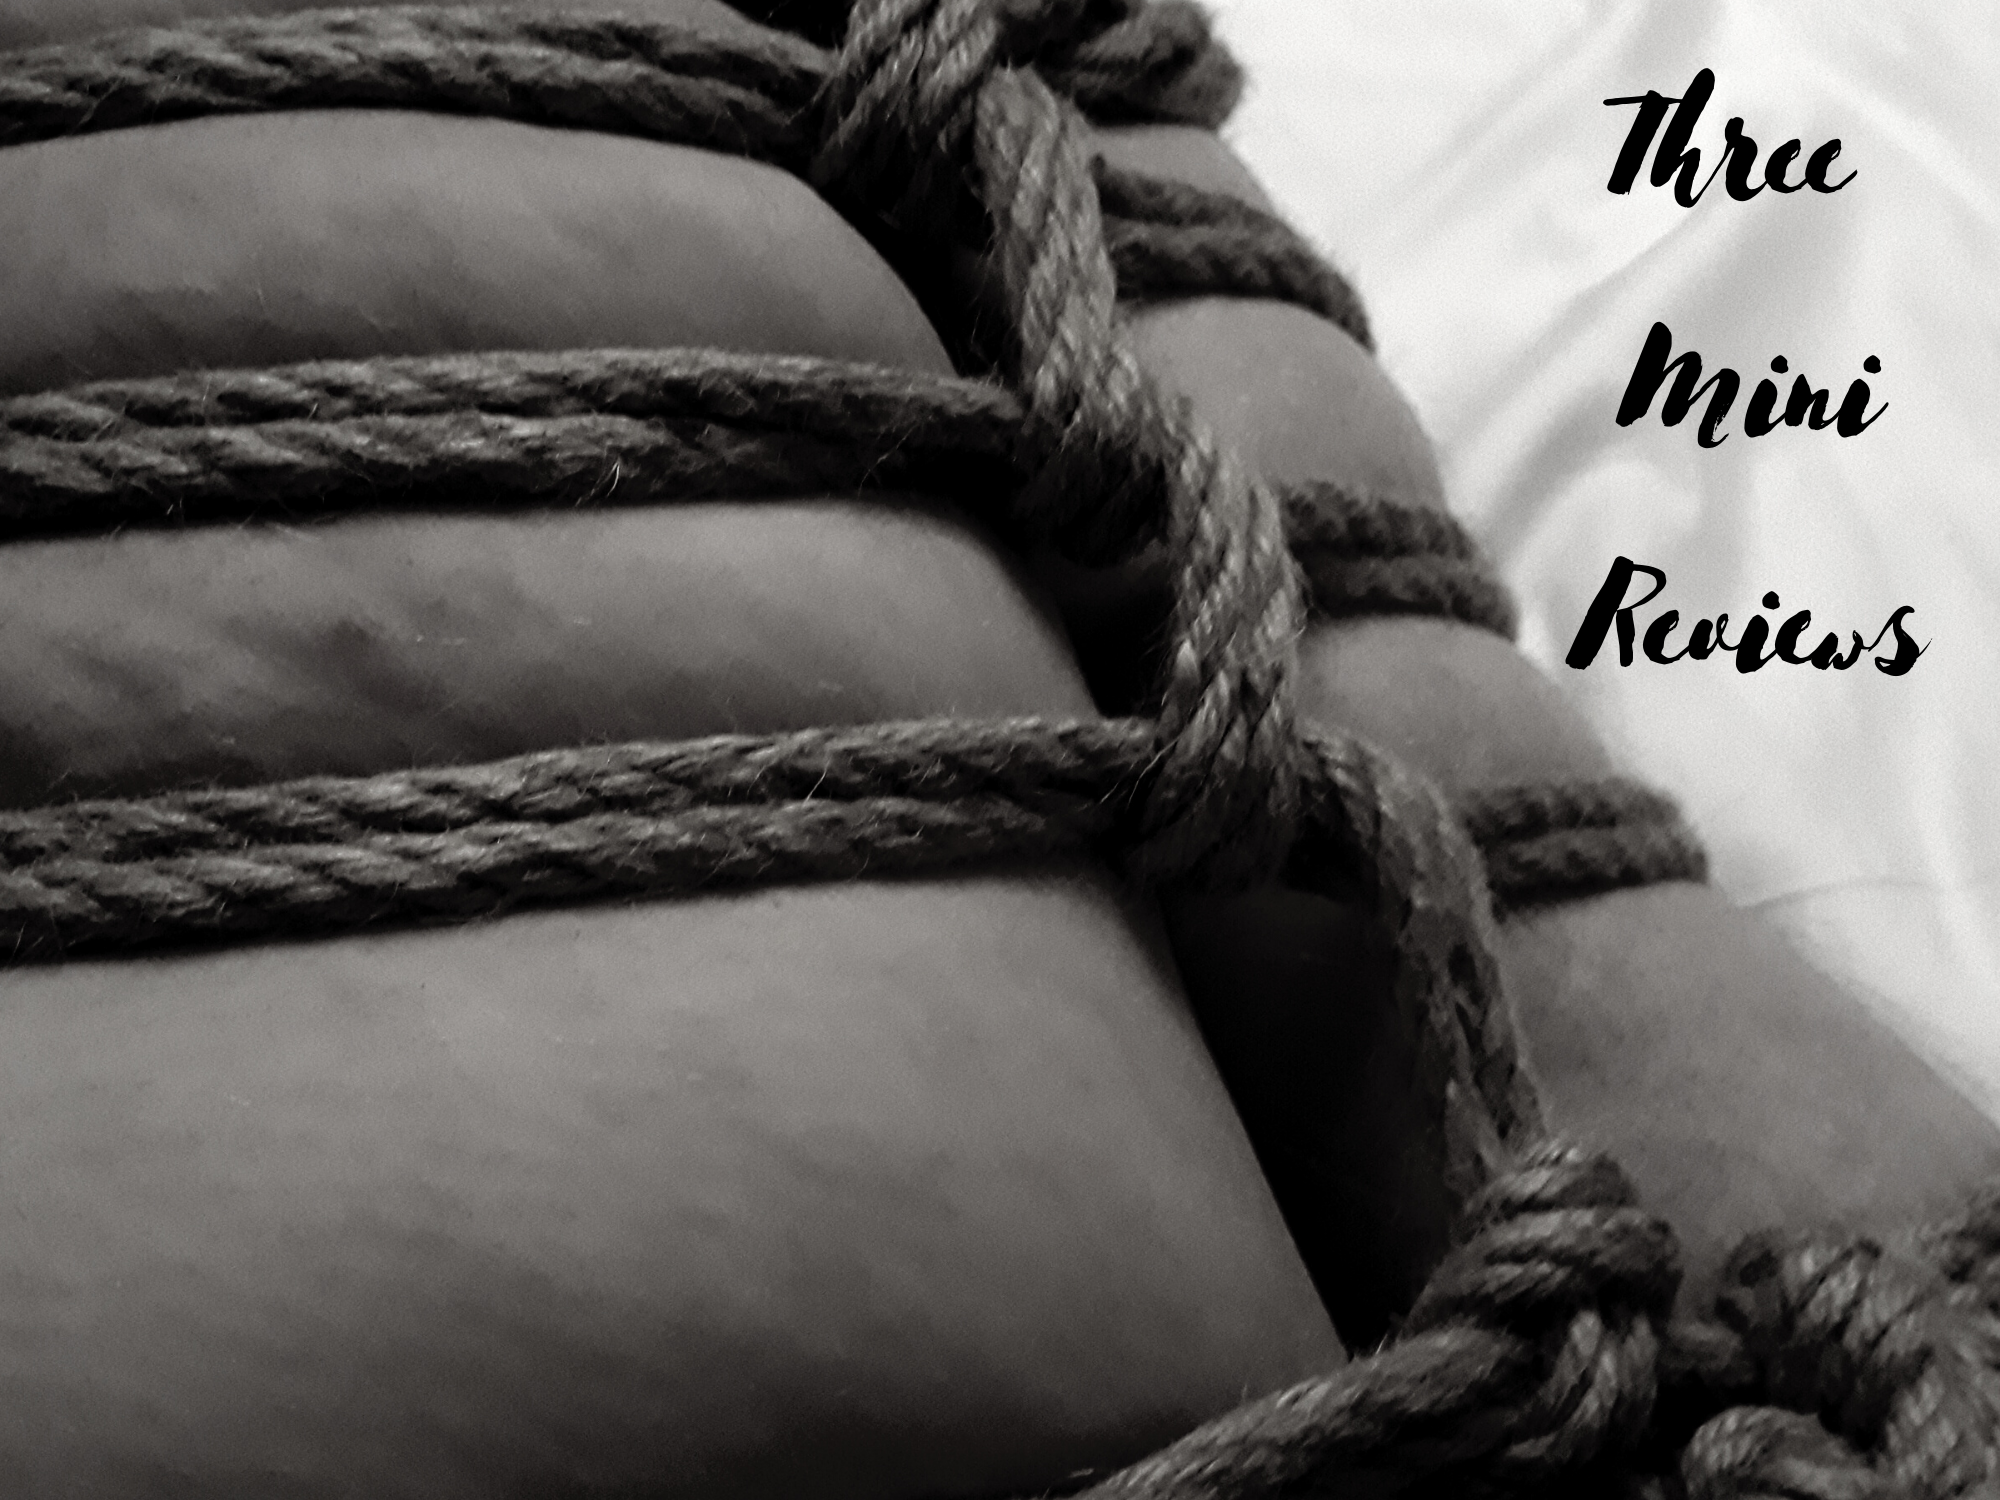 [Kink Product Review] Three Mini Reviews: Cuffs, Rope, Paddle